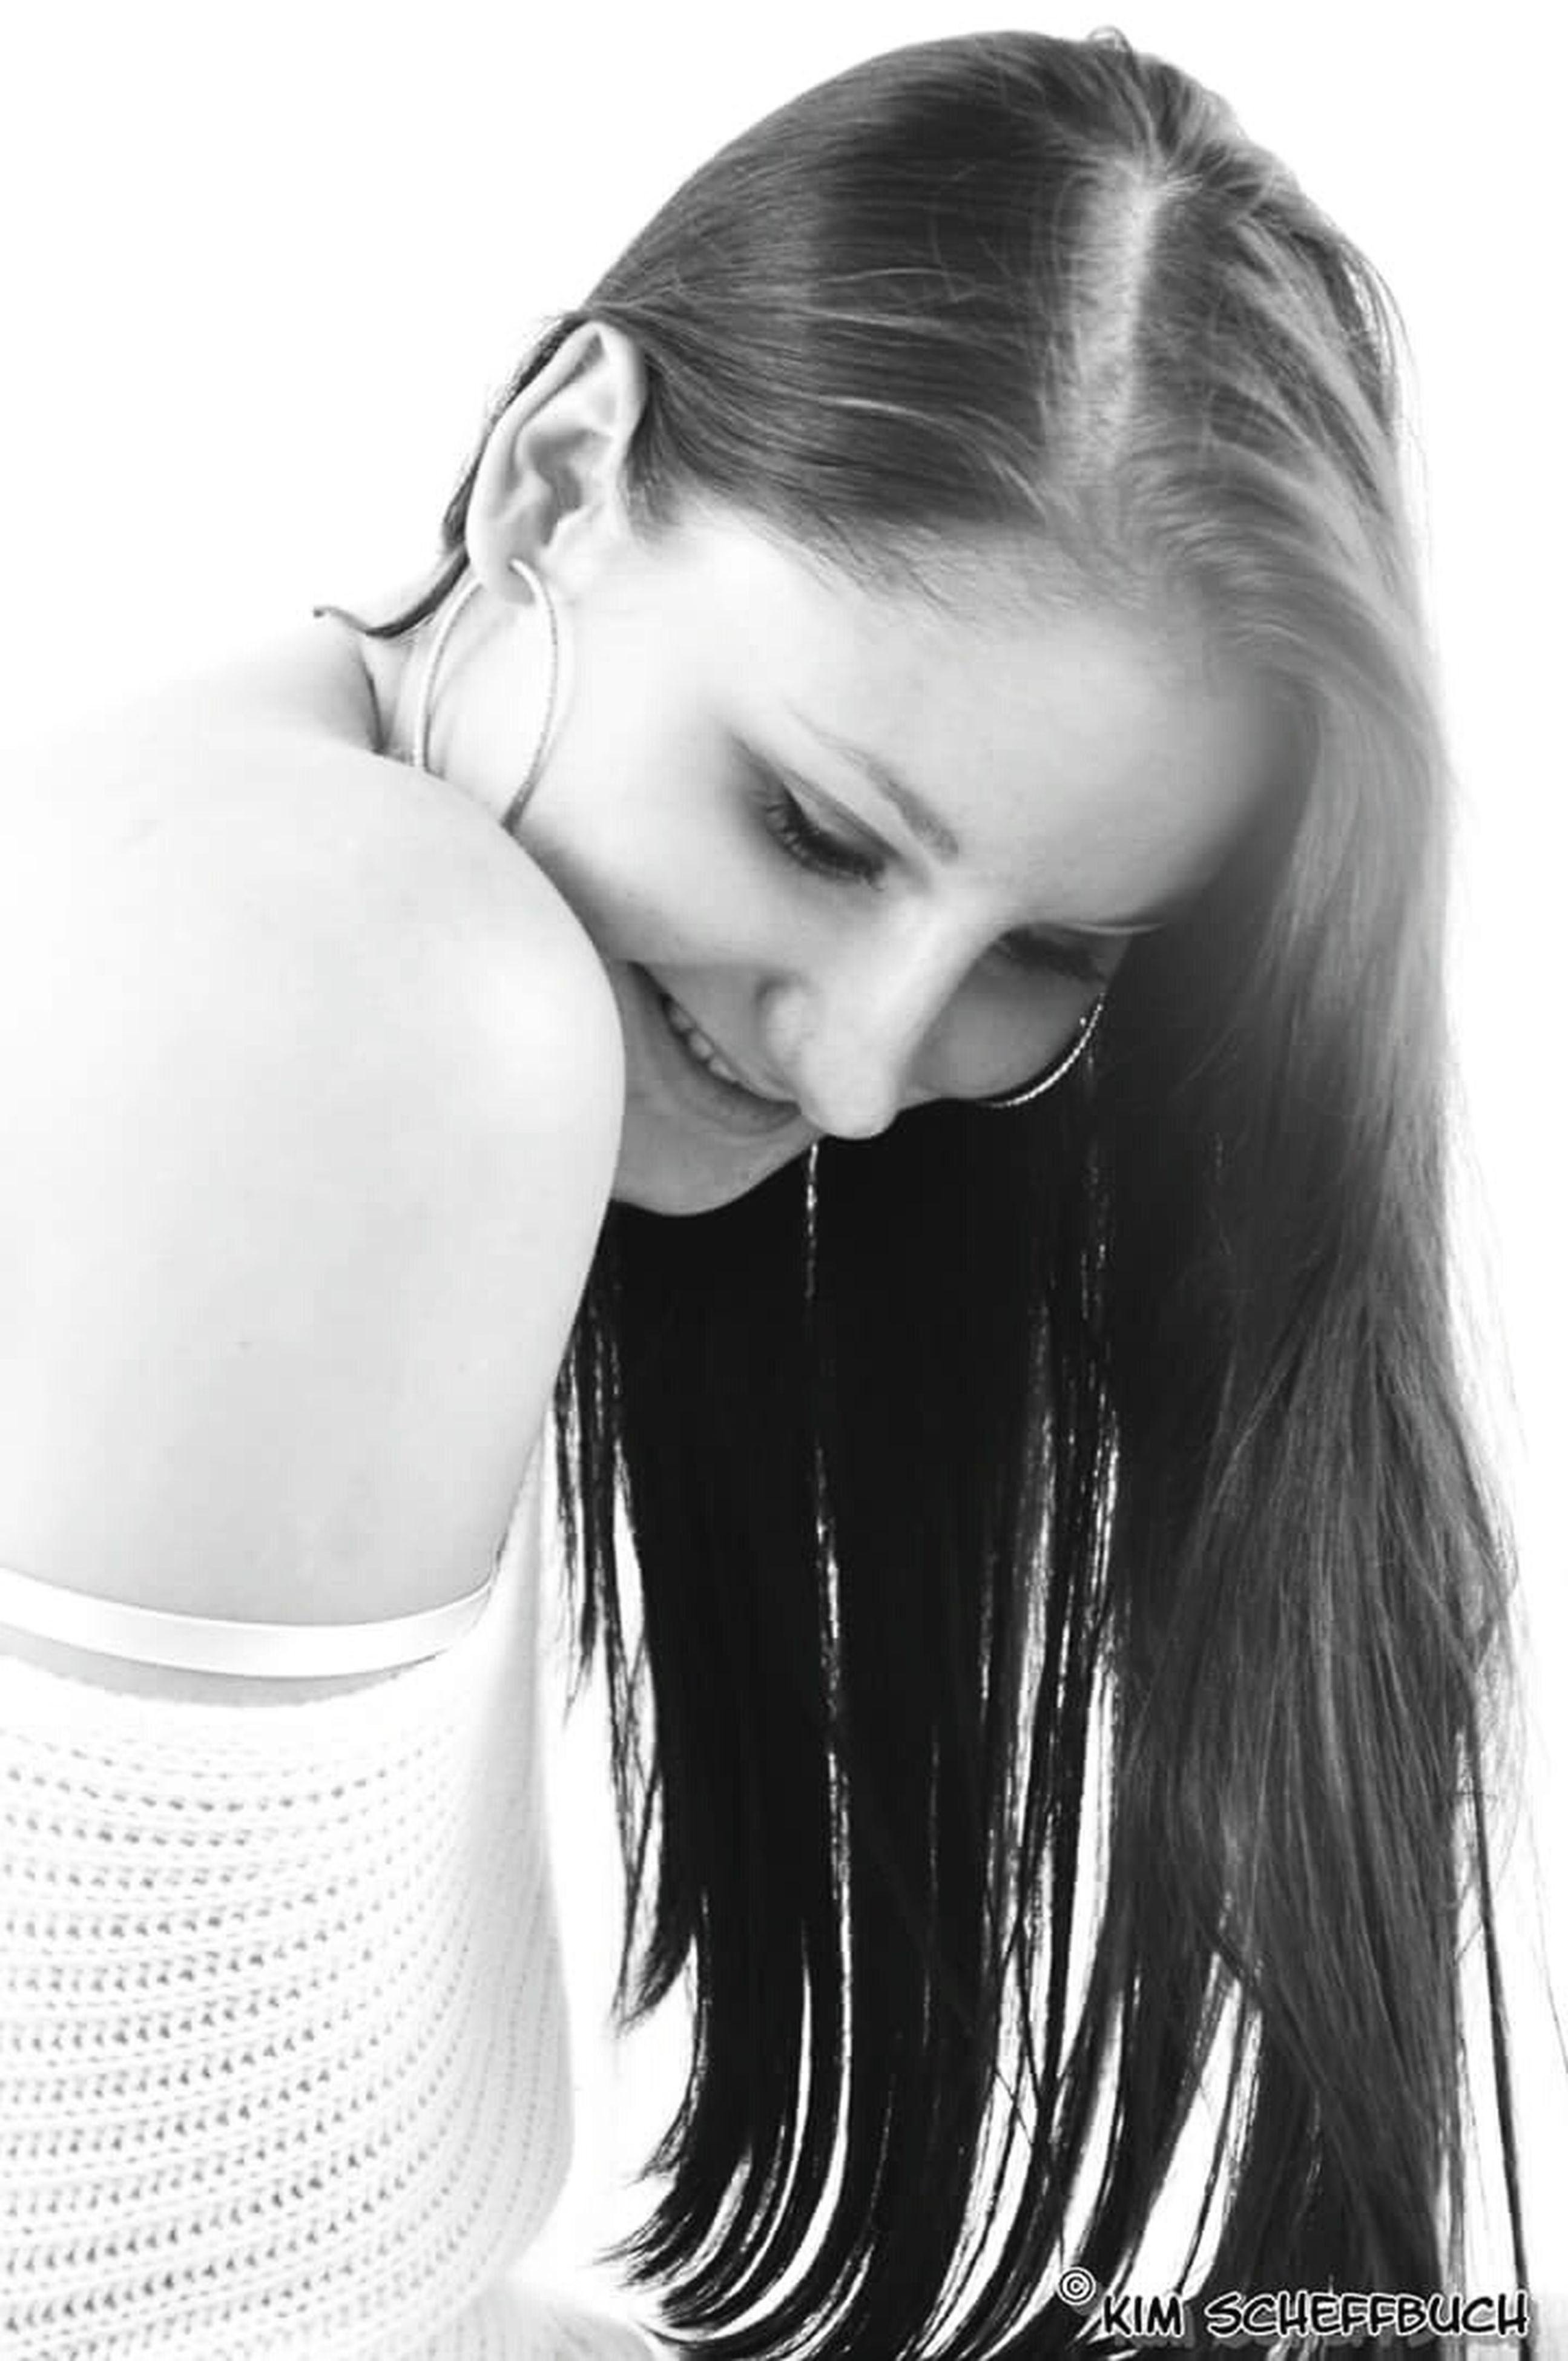 person, young adult, lifestyles, headshot, young women, front view, casual clothing, leisure activity, portrait, looking at camera, studio shot, indoors, long hair, white background, close-up, head and shoulders